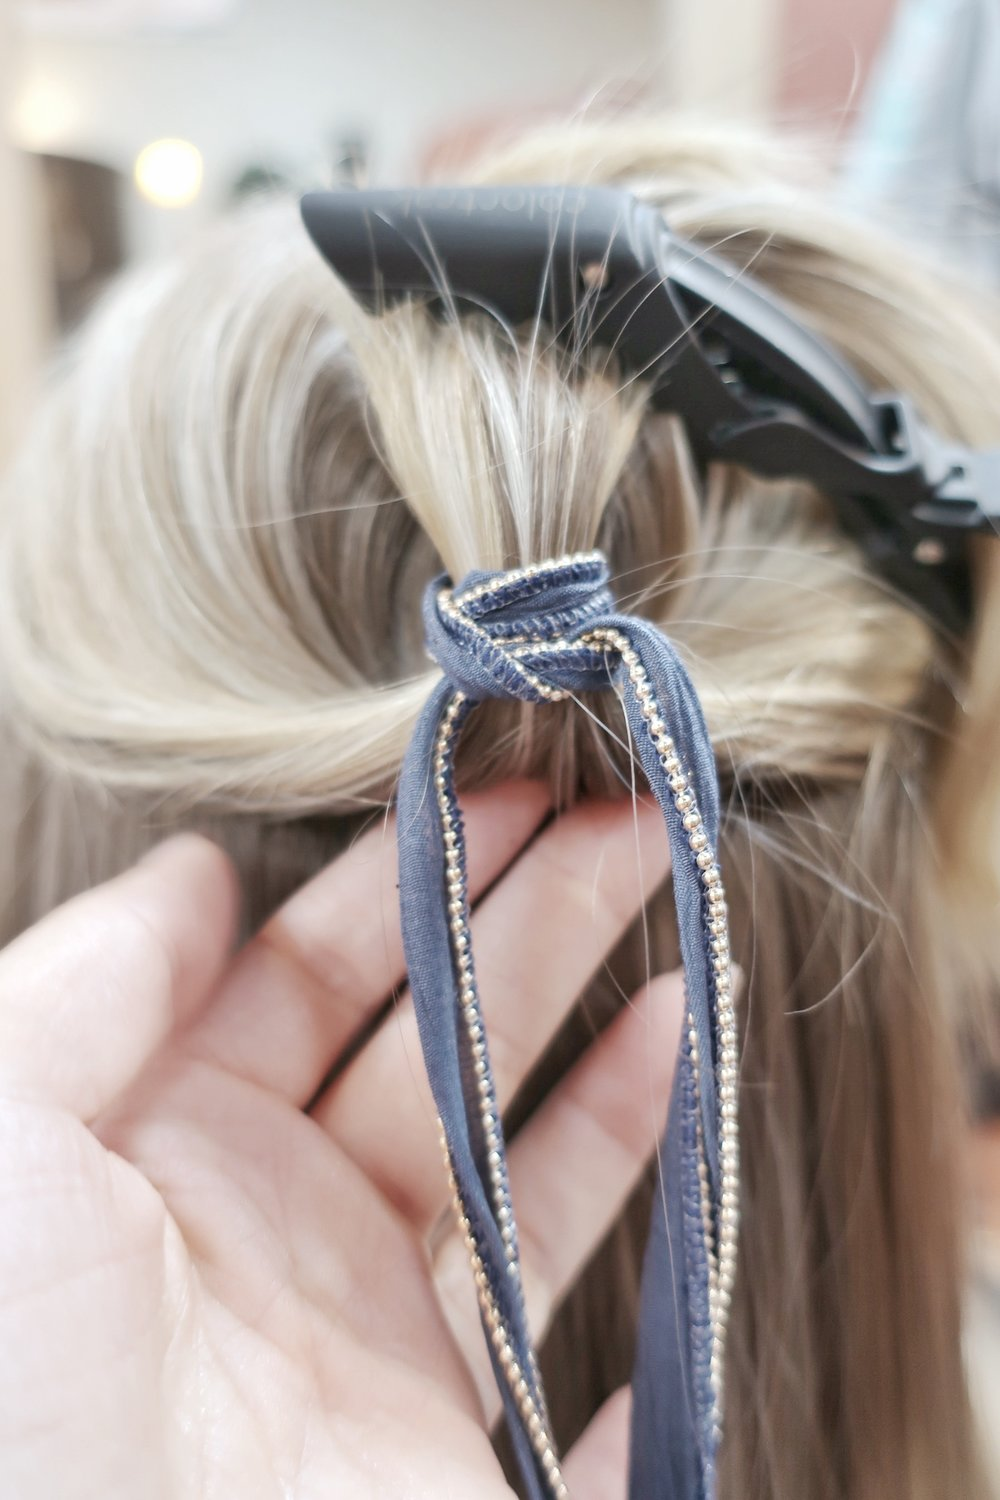 Now take your detail piece and start by wrapping around and tying a knot in the back to hide knot. Continue to wrap around the hair until reaching desired length. Secure with knot in the back and tuck extra fabric.